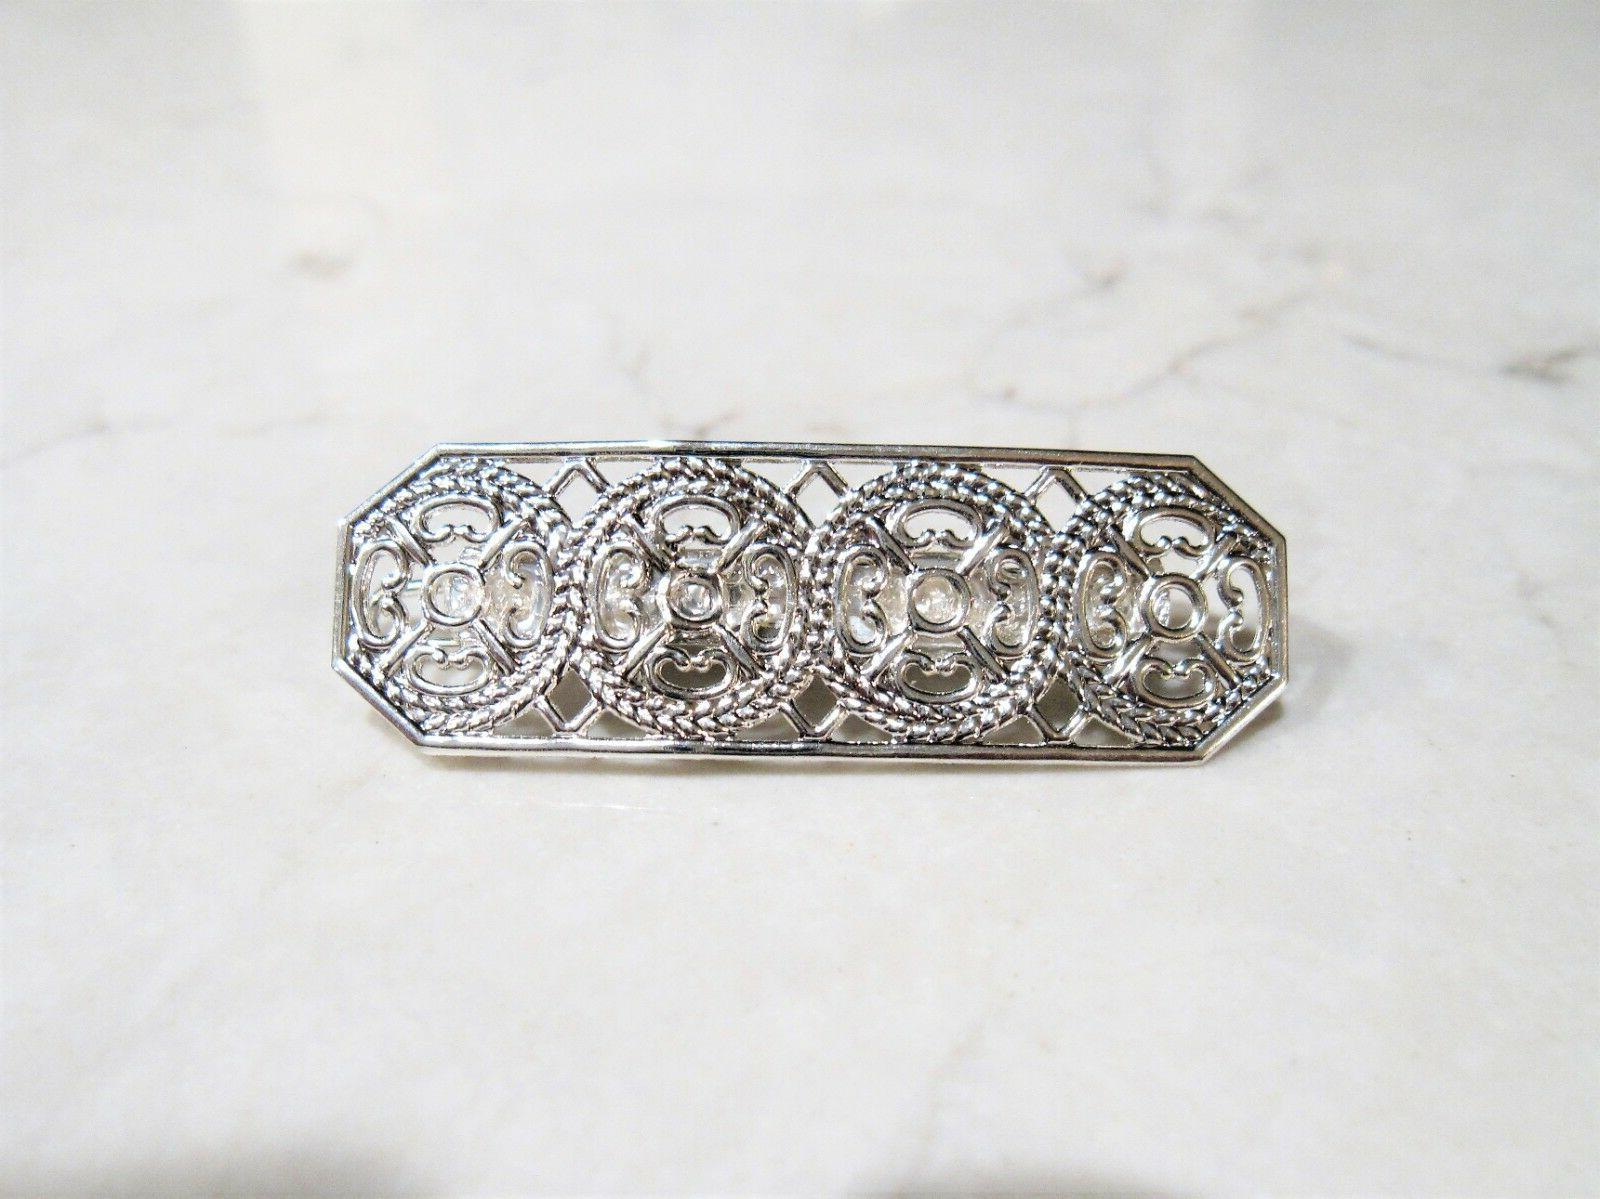 Small silver hair pin clip for fine